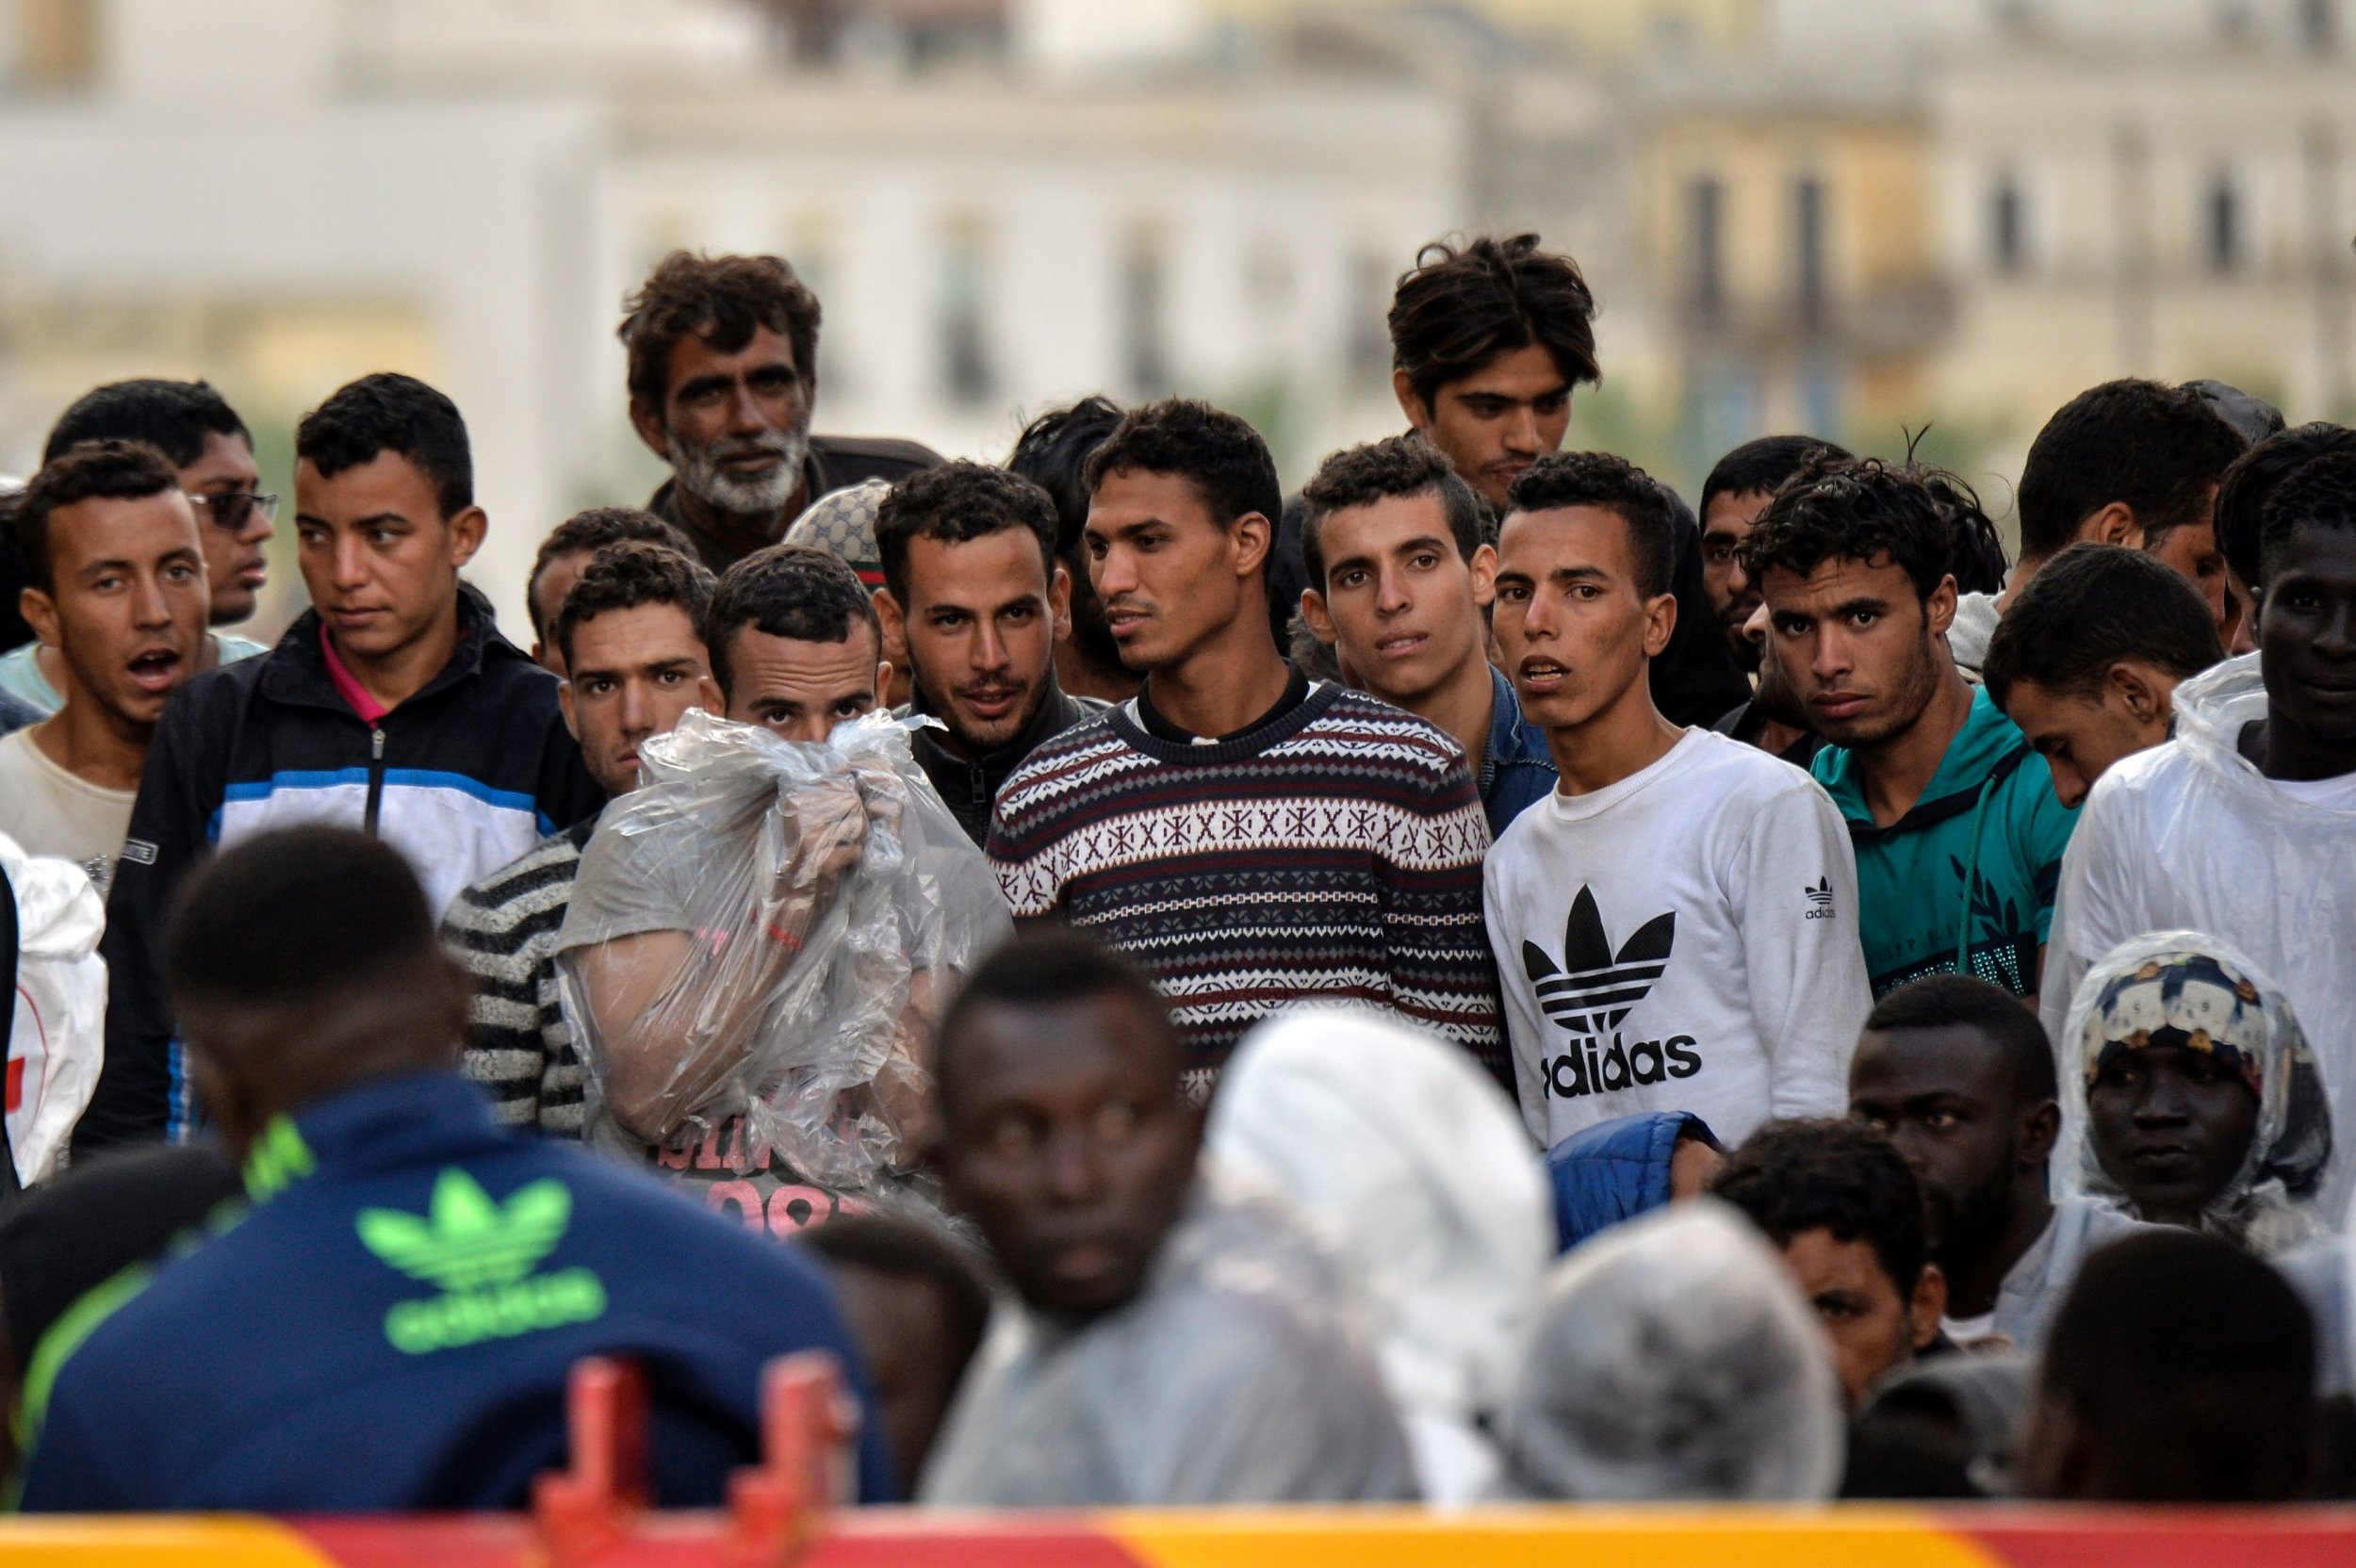 Syrian refugees reach southern Italy